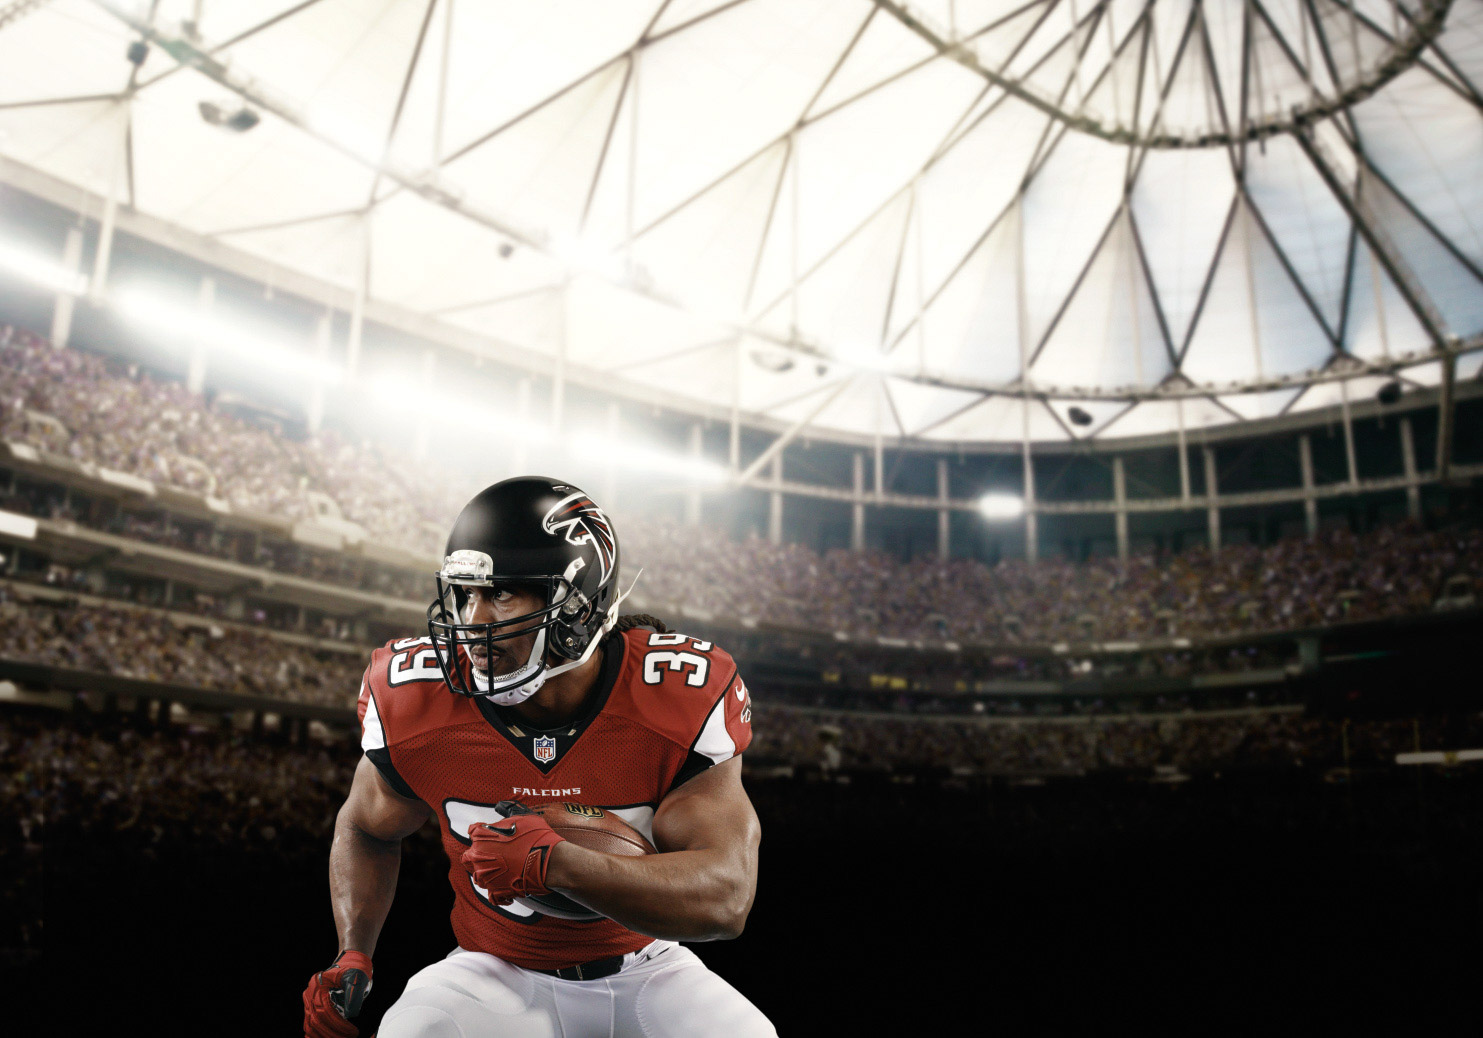 Steven Jackson is an American football running back for the Atlanta Falcons in the NFL